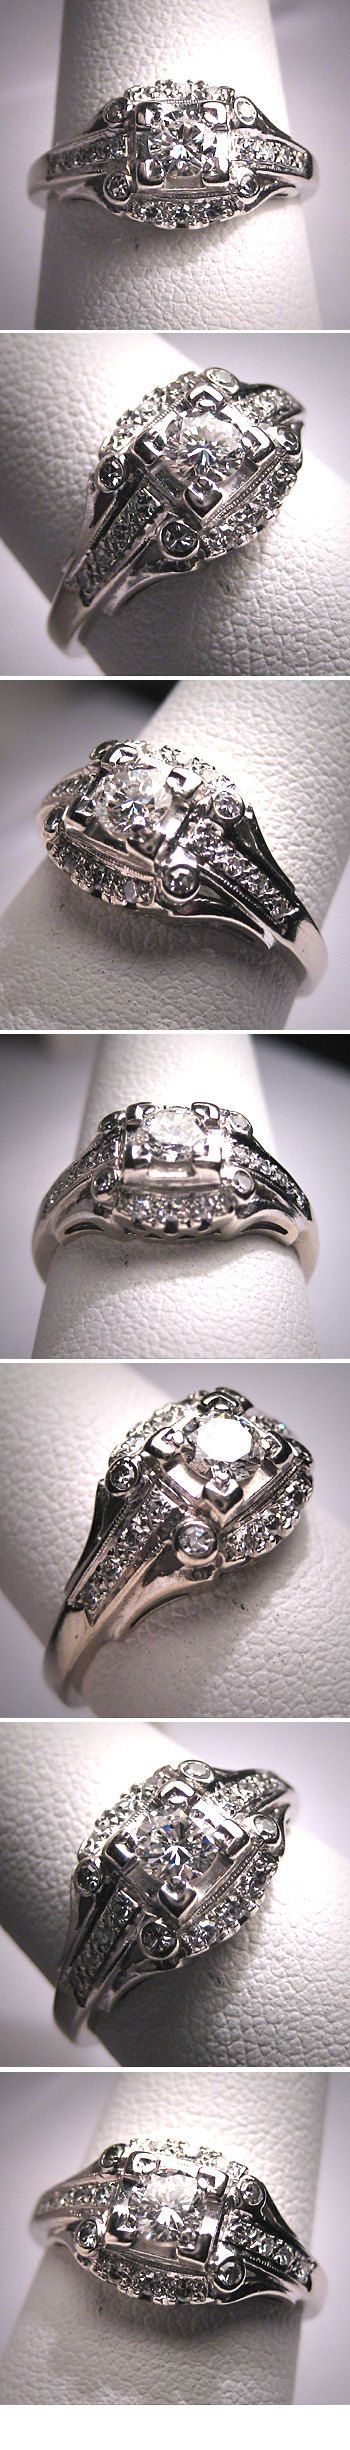 Antique Diamond Wedding Ring Vintage Art Deco by AawsombleiJewelry, $3285.00. ABSOLUTELY GORGEOUS.